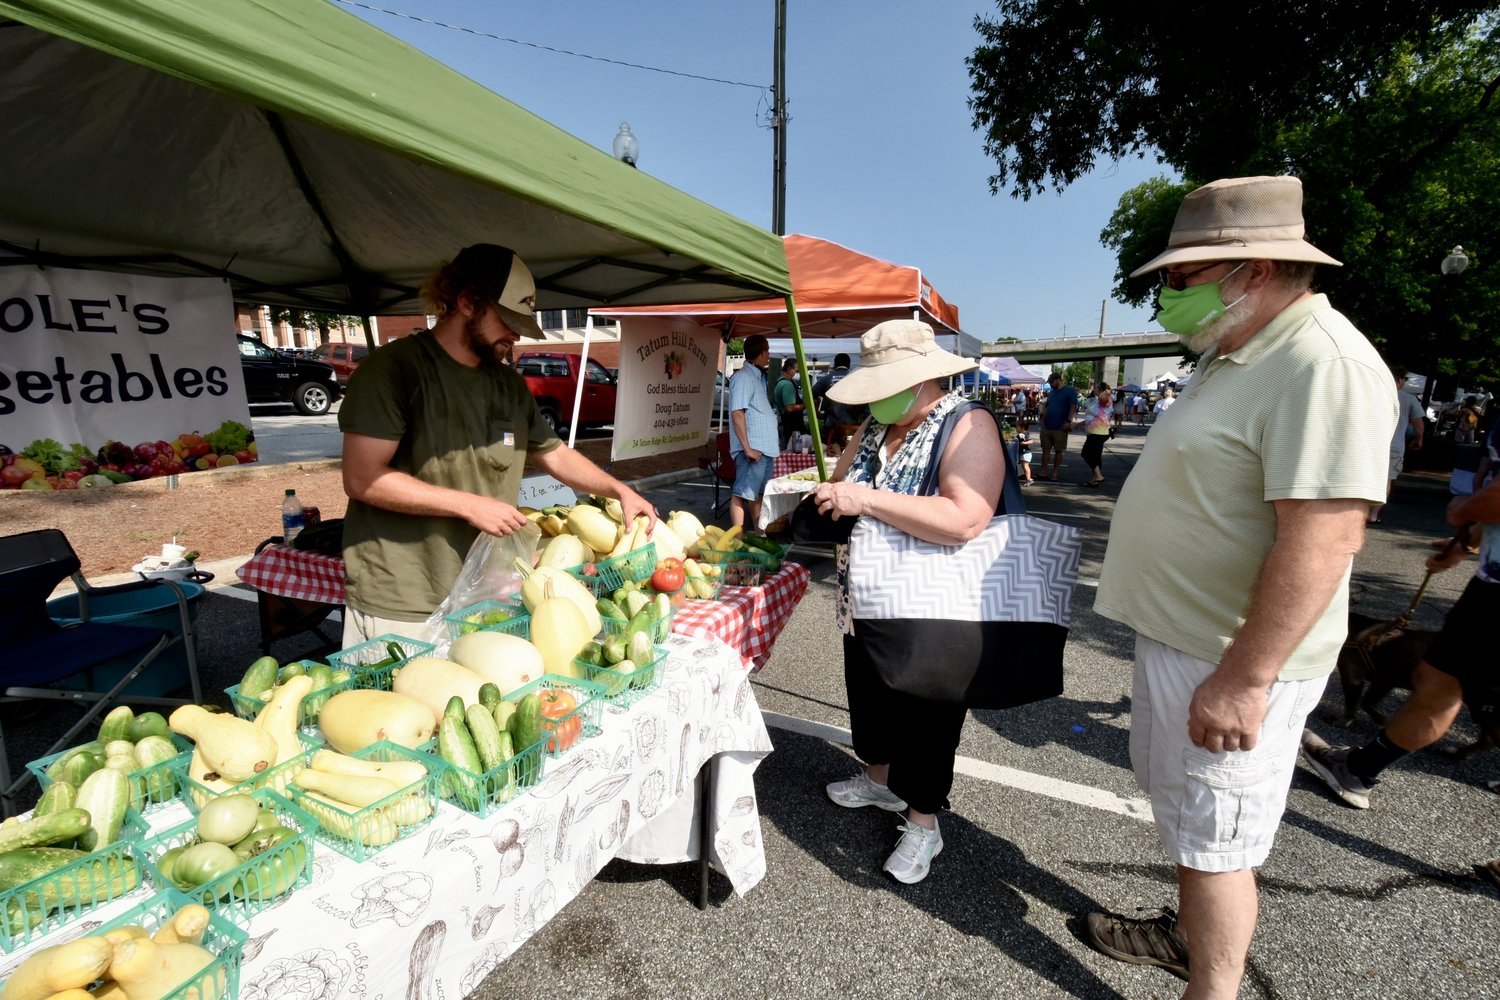 Many shoppers at the Cartersville Farmers Market, including this couple purchasing goods from Evan Cole at his Cole's Vegetables tent, are taking precautions against COVID-19 by wearing a mask.